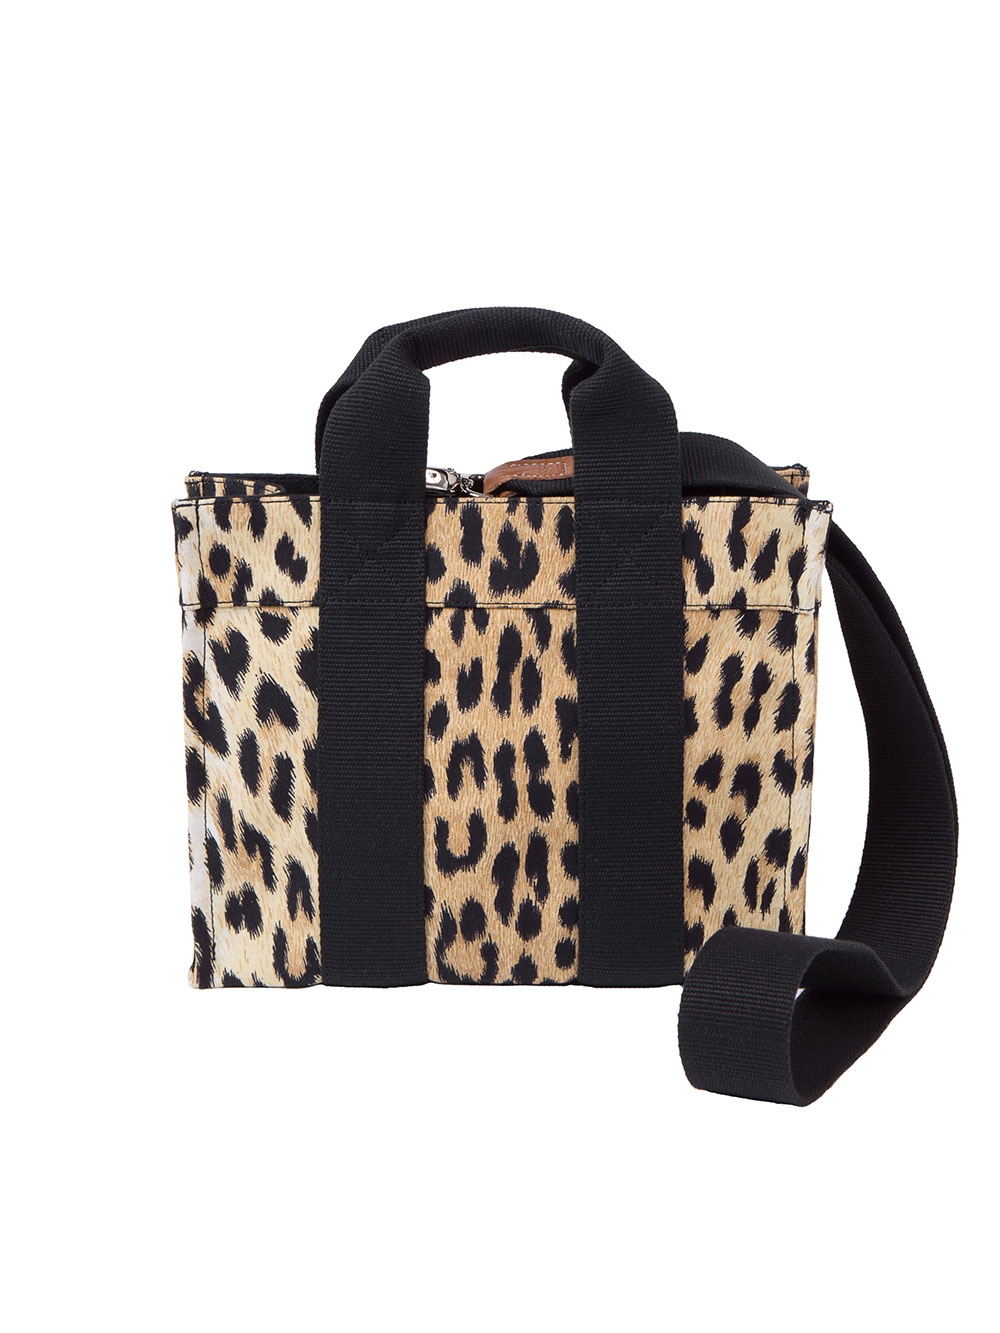 SAC BABY TOTE BANDOULIERE LEOPARD